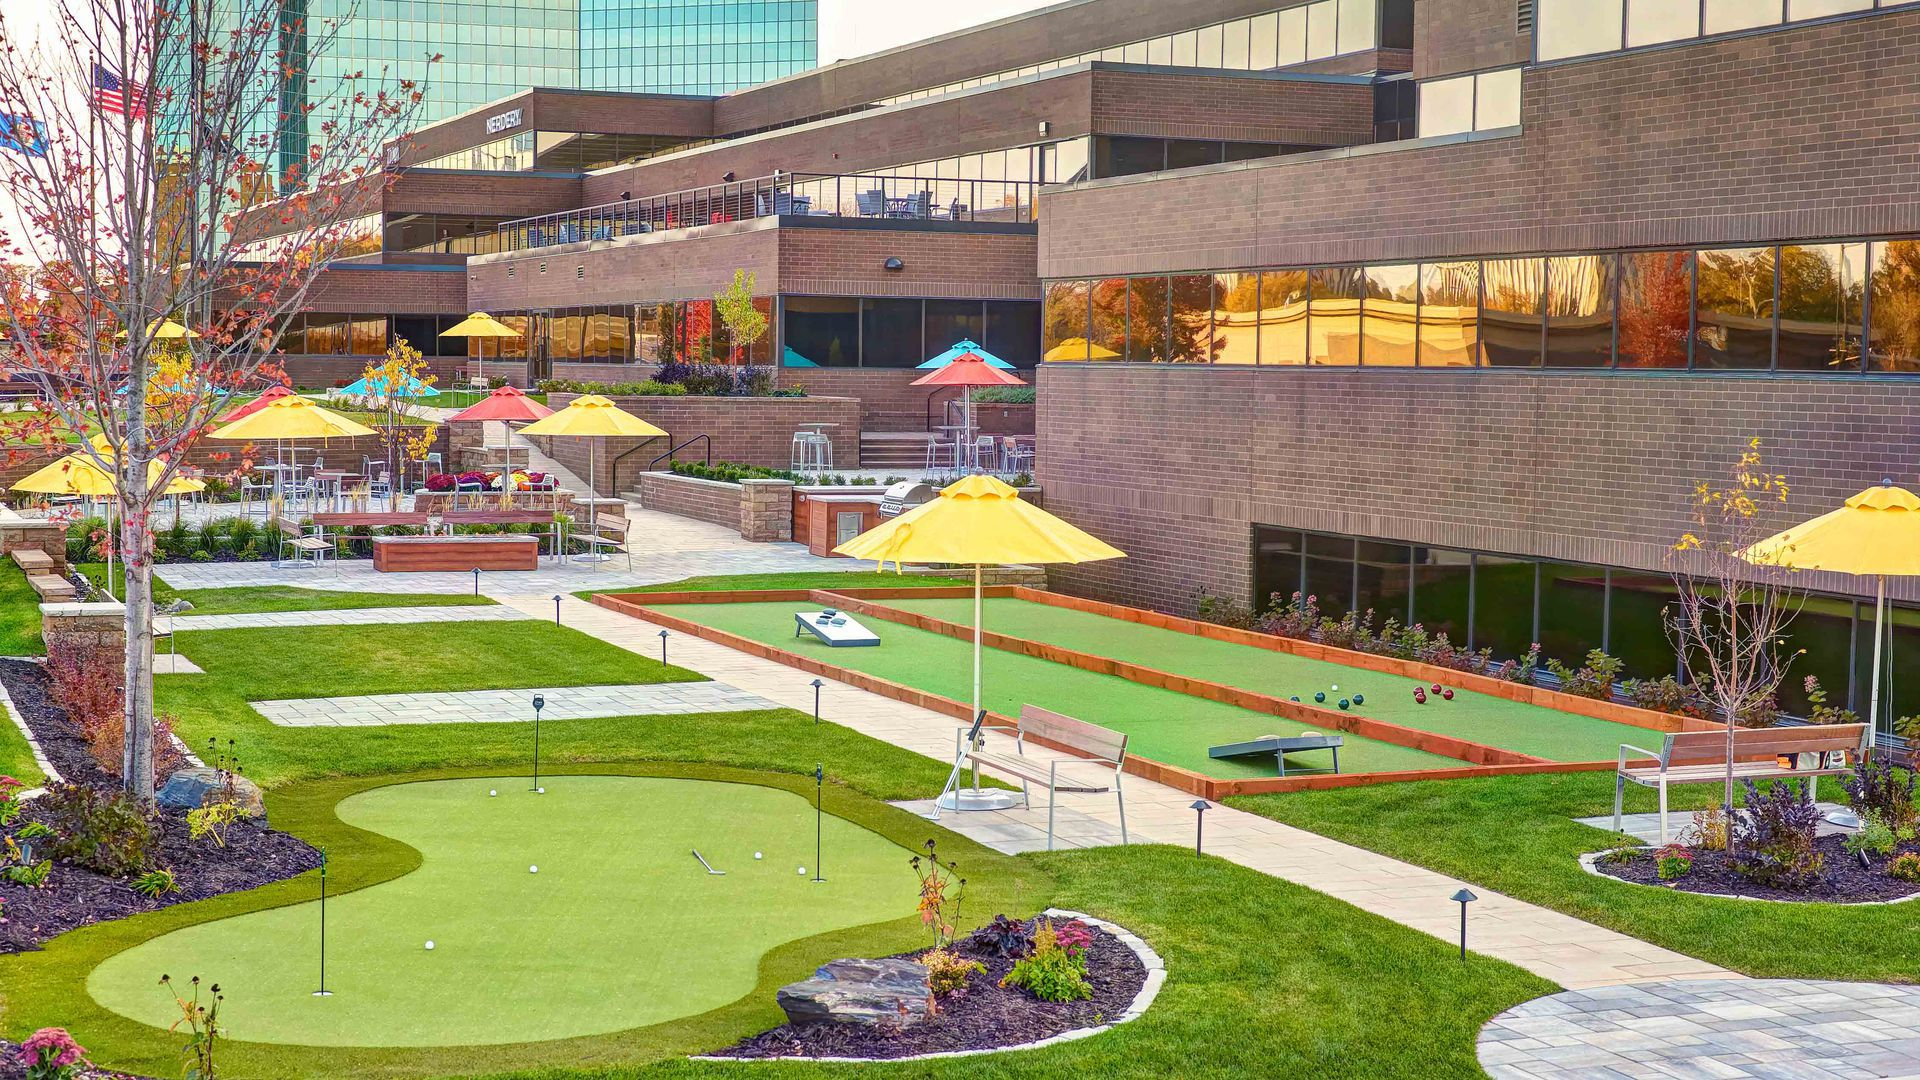 The exterior of the 7700 France building, which has a new patio with a putting green and lawn games.